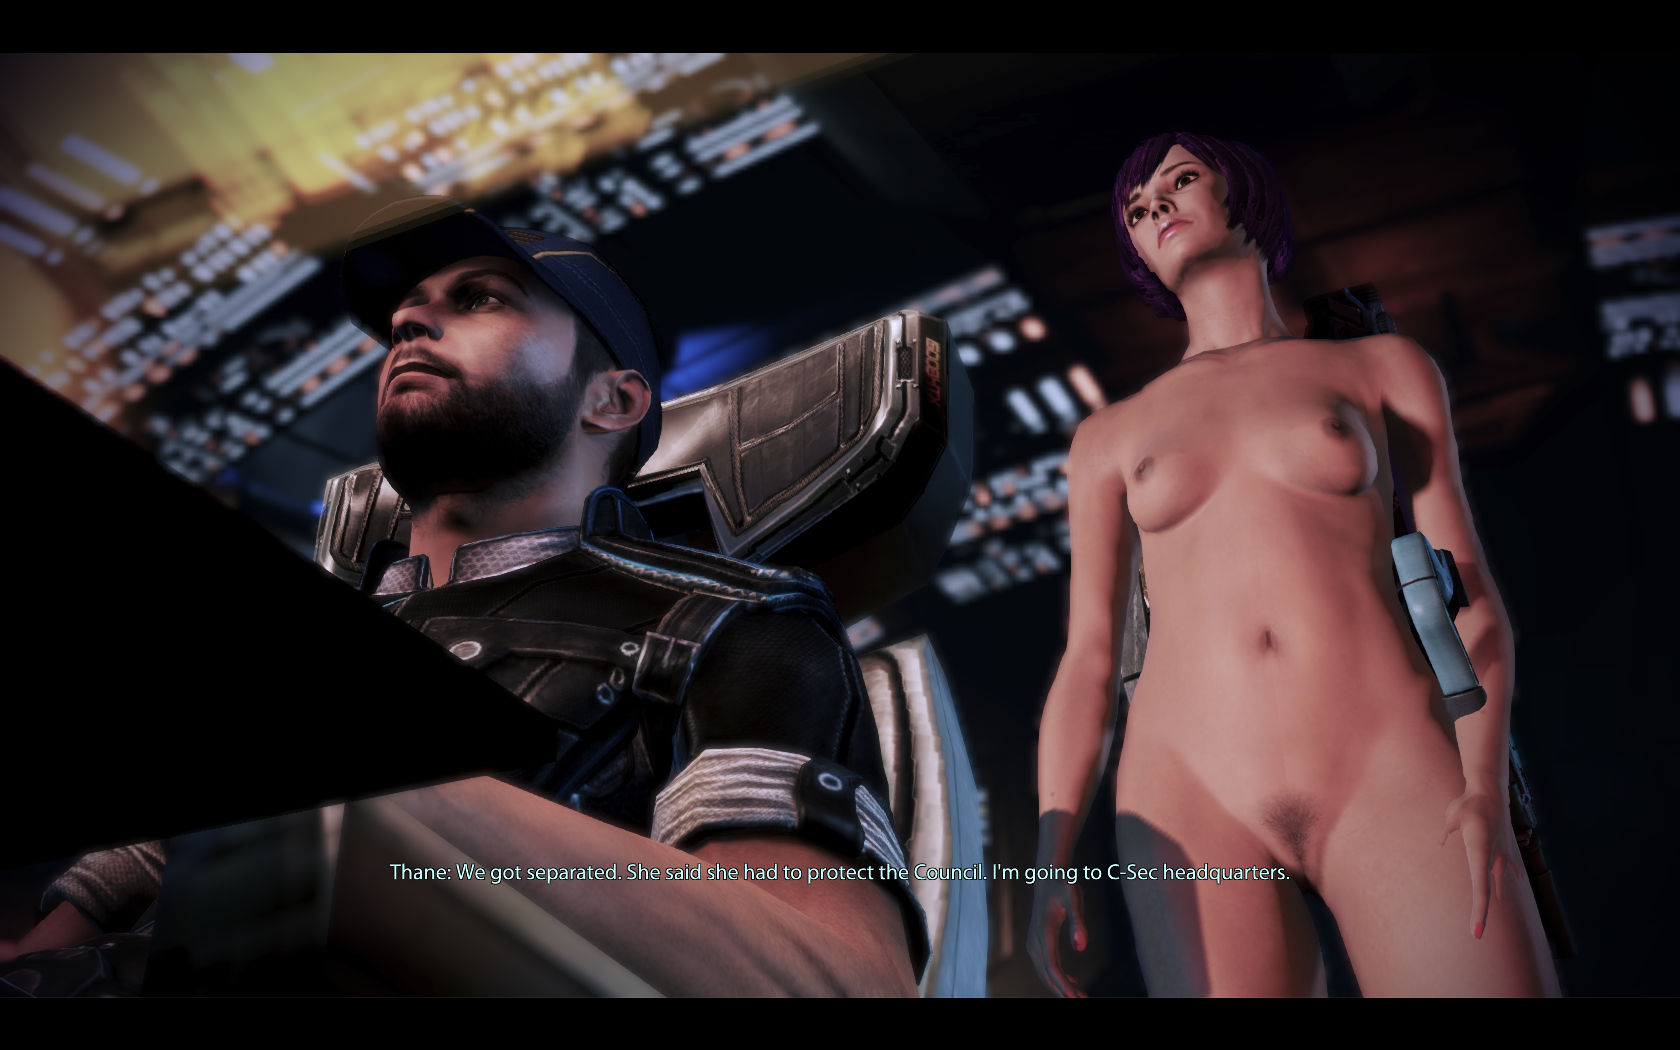 Nude mass effect girl erotic scene